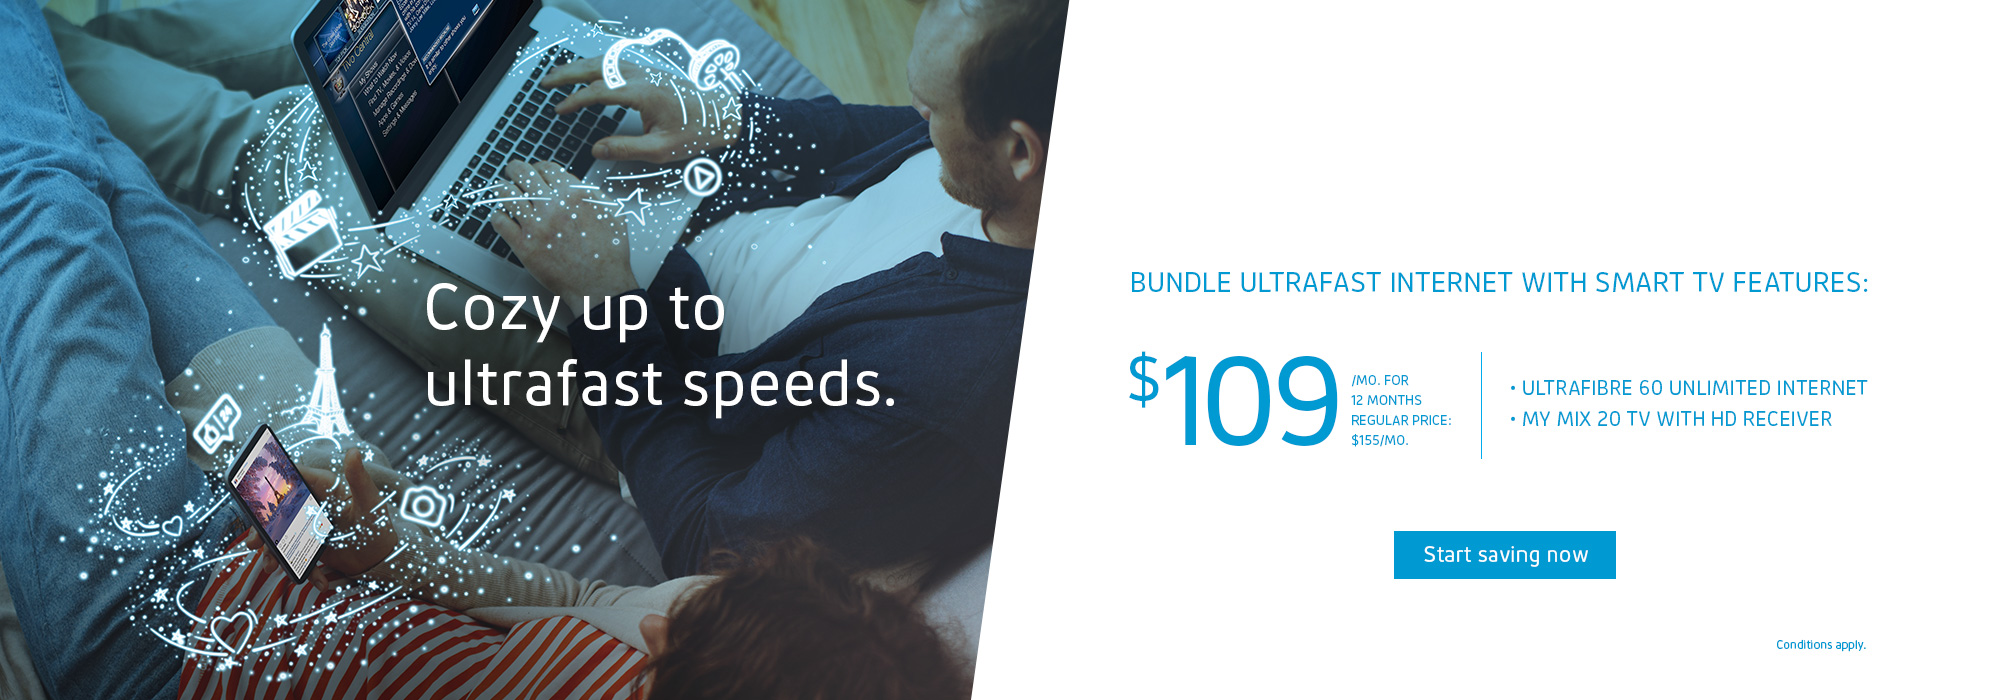 Cozy up to ultrafast speeds.  BUNDLE ULTRAFAST INTERNET WITH SMART TV FEATURES  $109/MO. FOR 12 MONTHS REGULAR PRICE: $155/MO.  ULTRAFIBRE 60 UNLIMITED INTERNET MY MIX 20 TV WITH HD RECEIVER